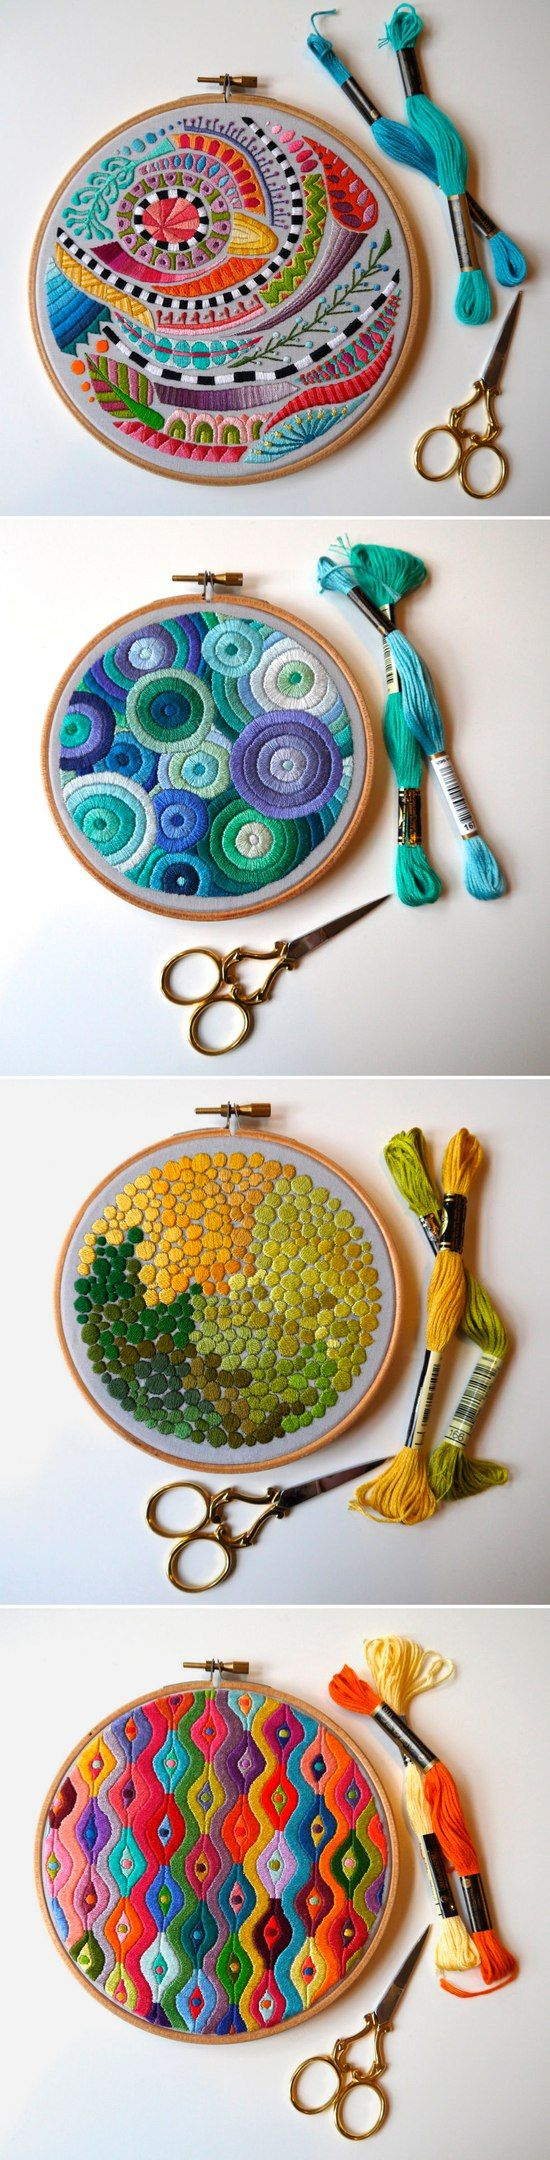 Abstract, embroiders like textiles.  Embroidery ideas -  take inspiration from favourite textiles